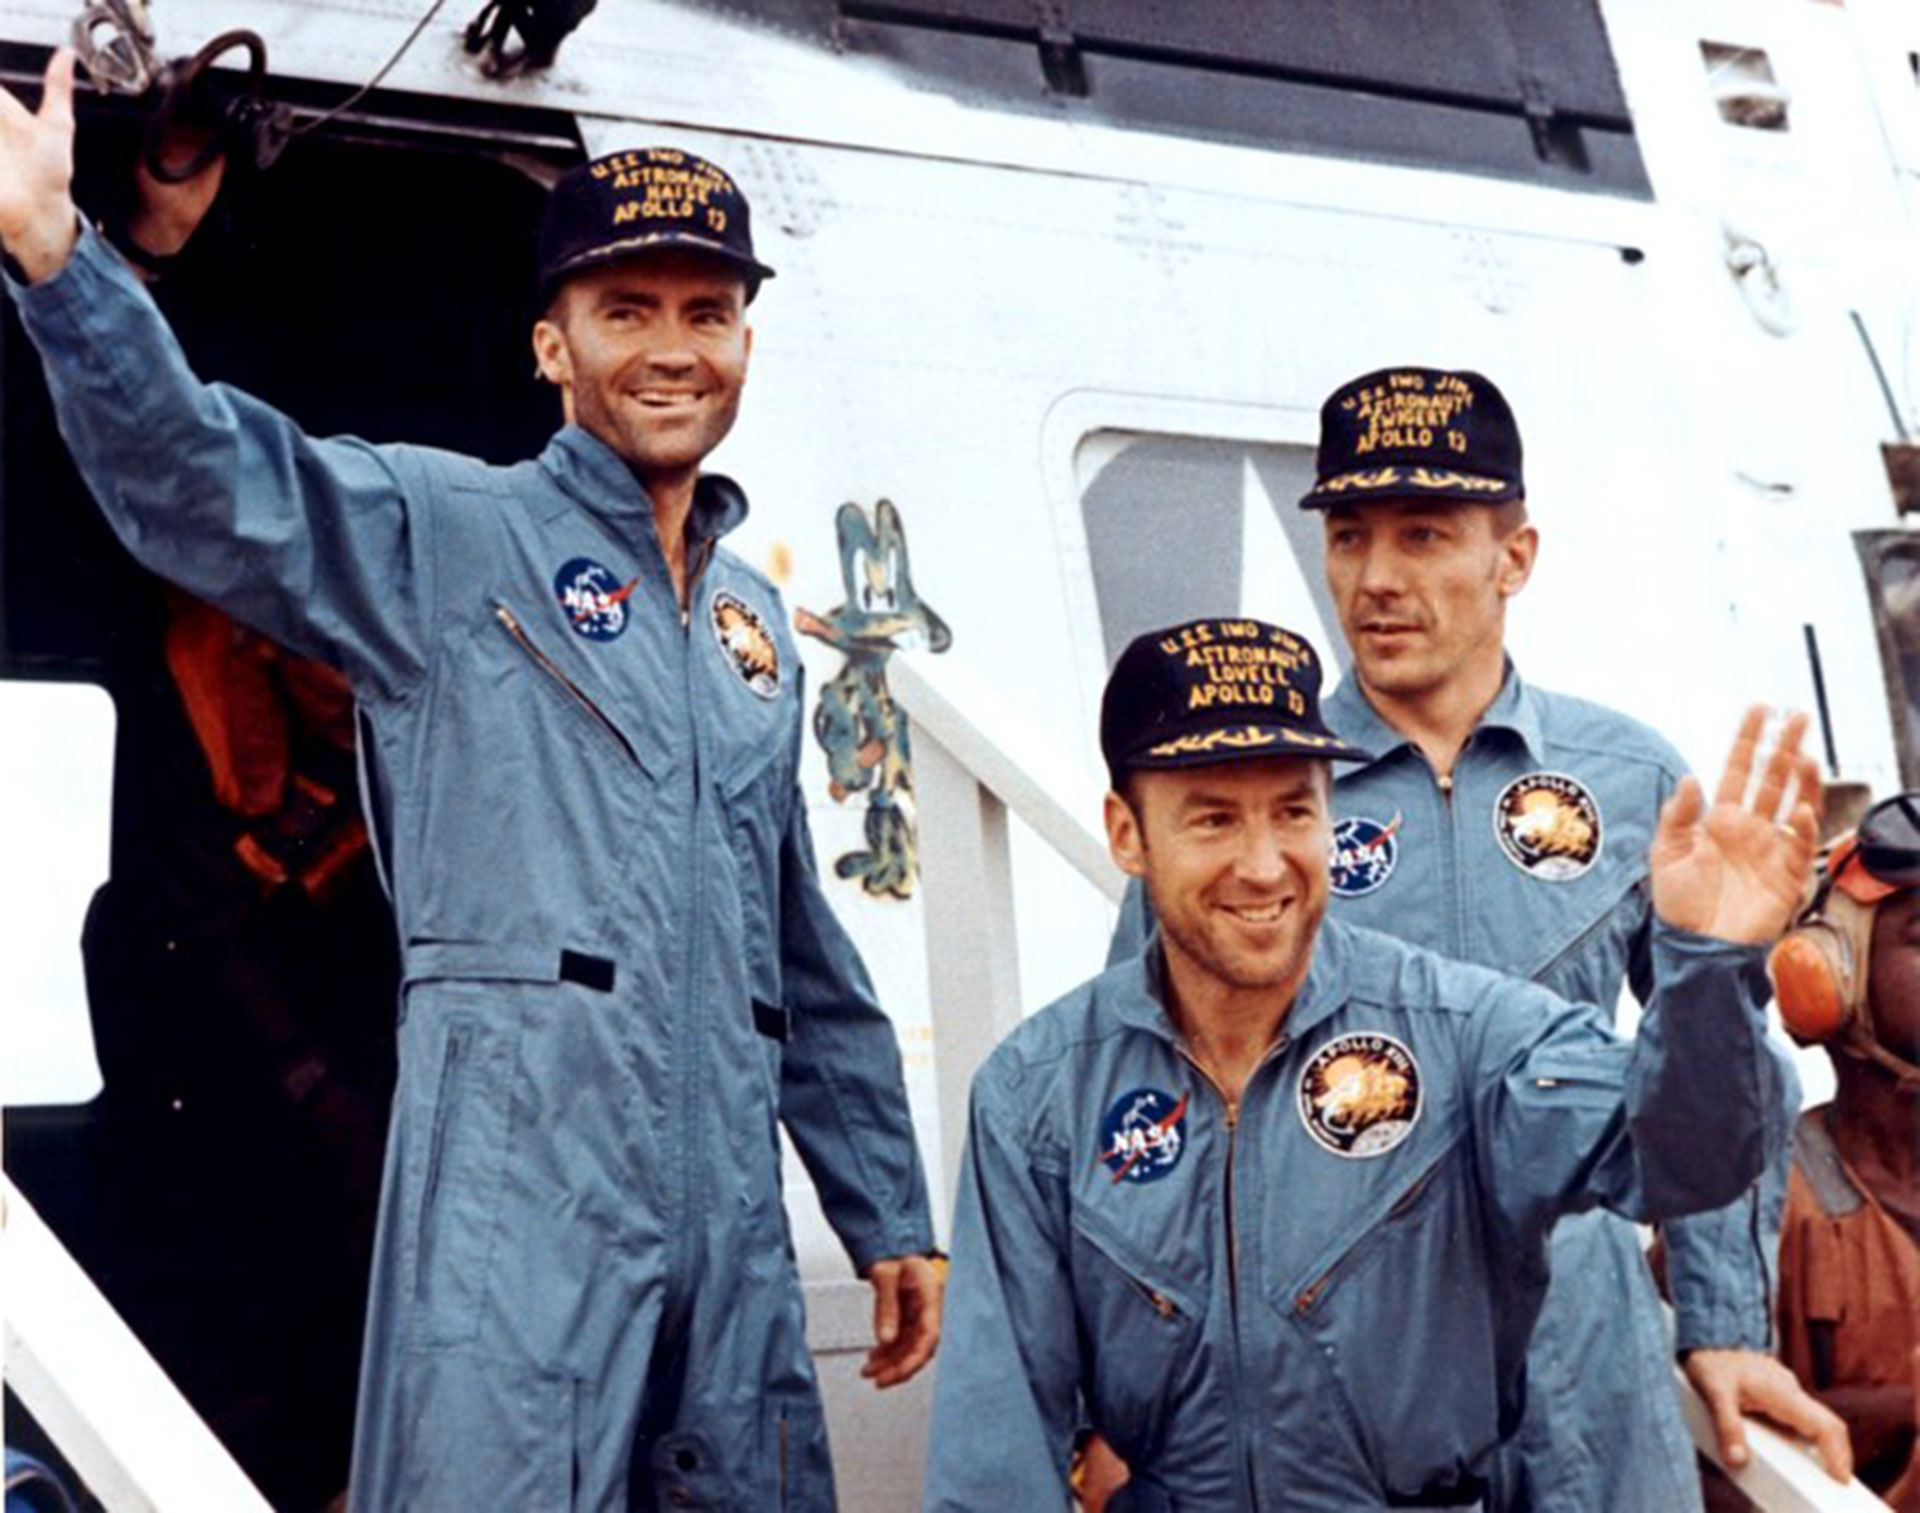 apollo 13 crew - photo #7